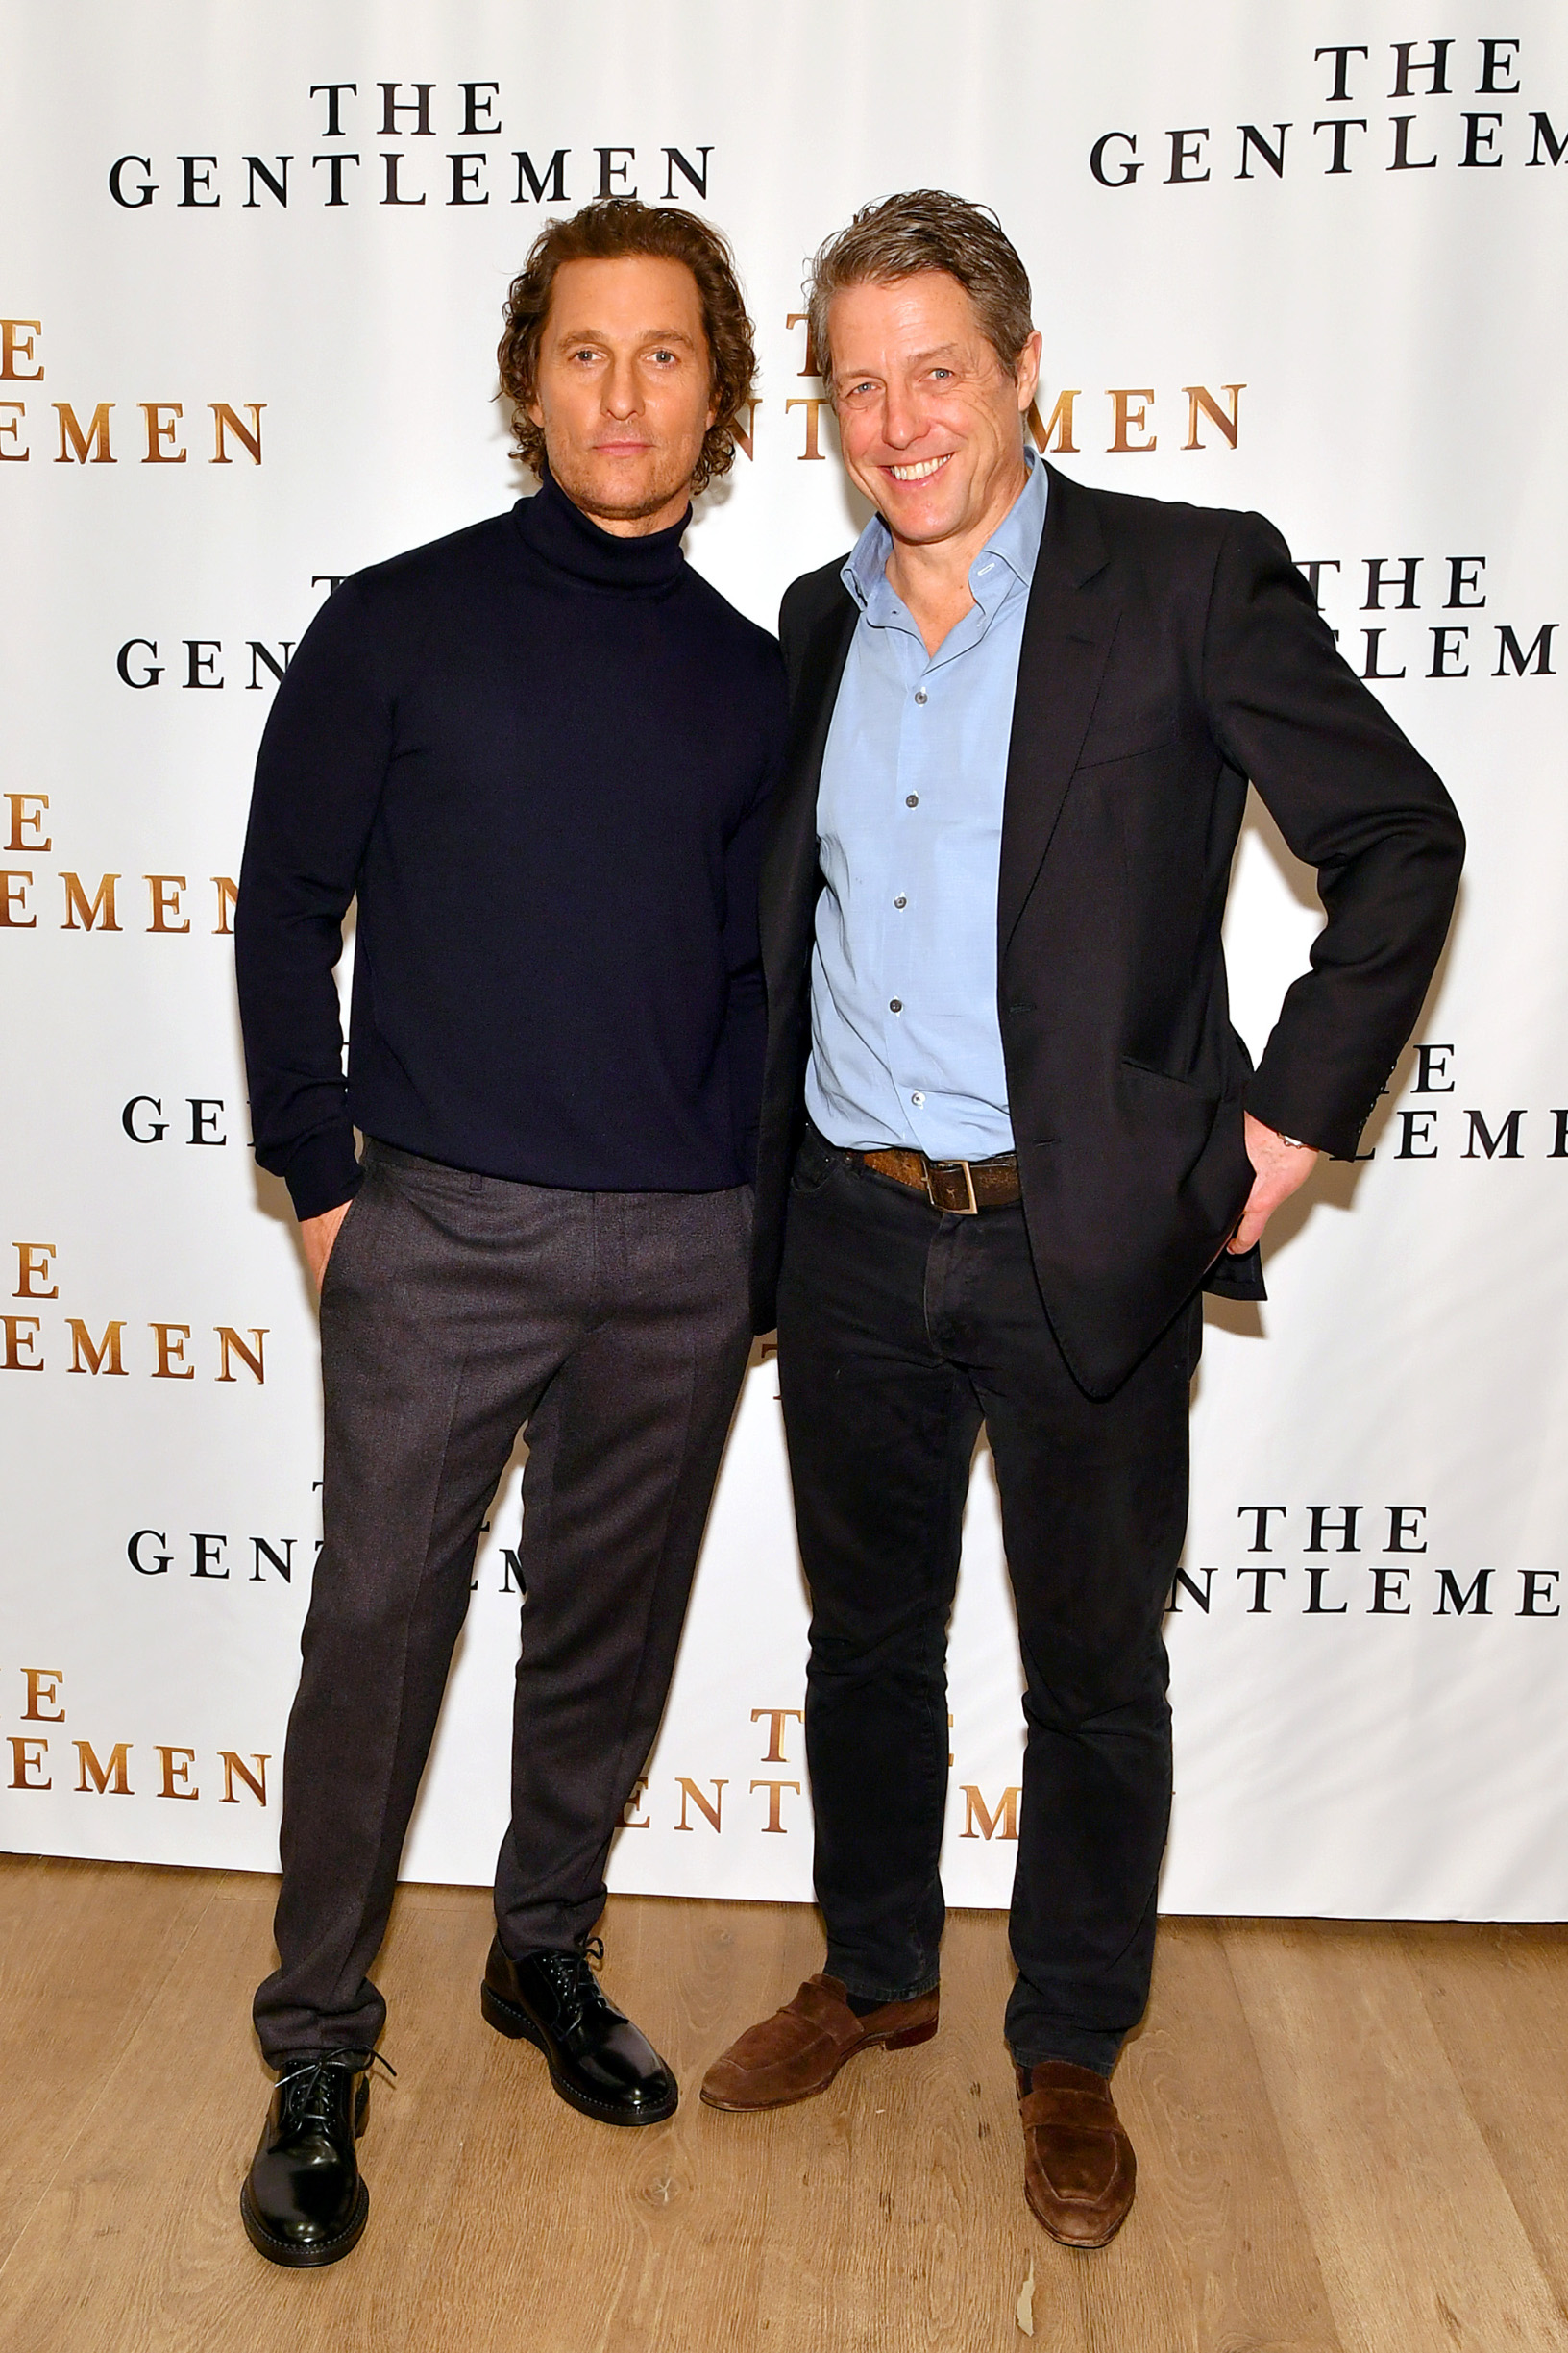 NEW YORK, NEW YORK - JANUARY 11: Matthew McConaughey (L) and Hugh Grant attend the NY Photo Call for